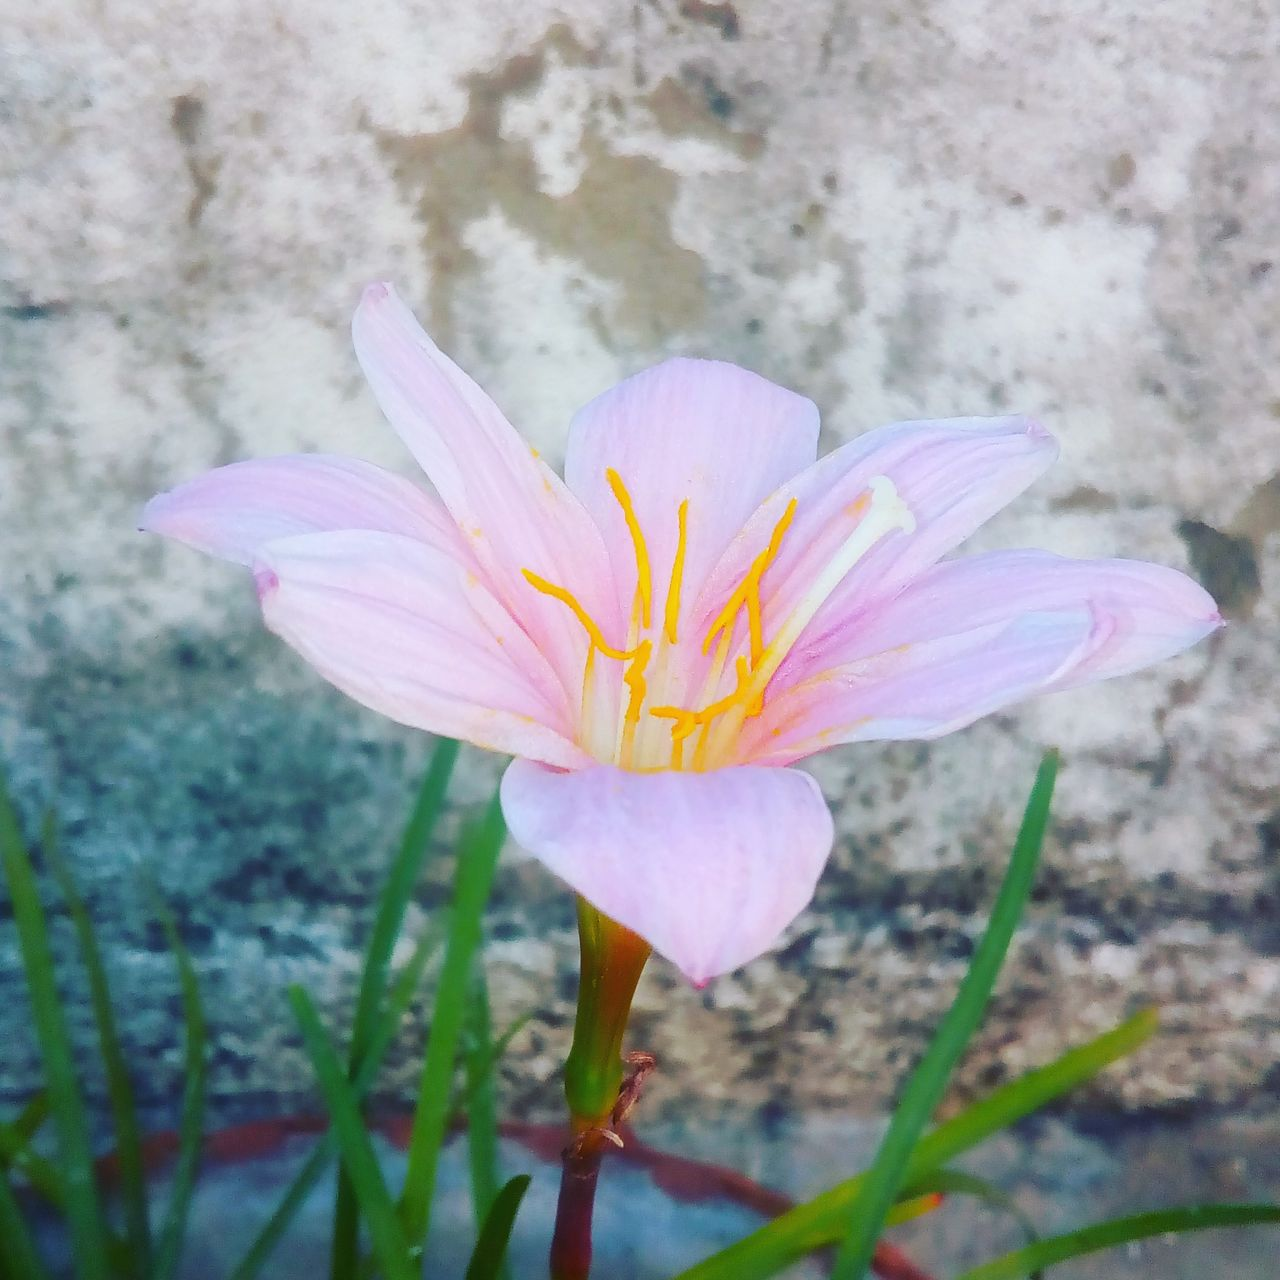 flower, petal, fragility, flower head, freshness, beauty in nature, nature, growth, day, close-up, blooming, plant, outdoors, no people, pink color, springtime, crocus